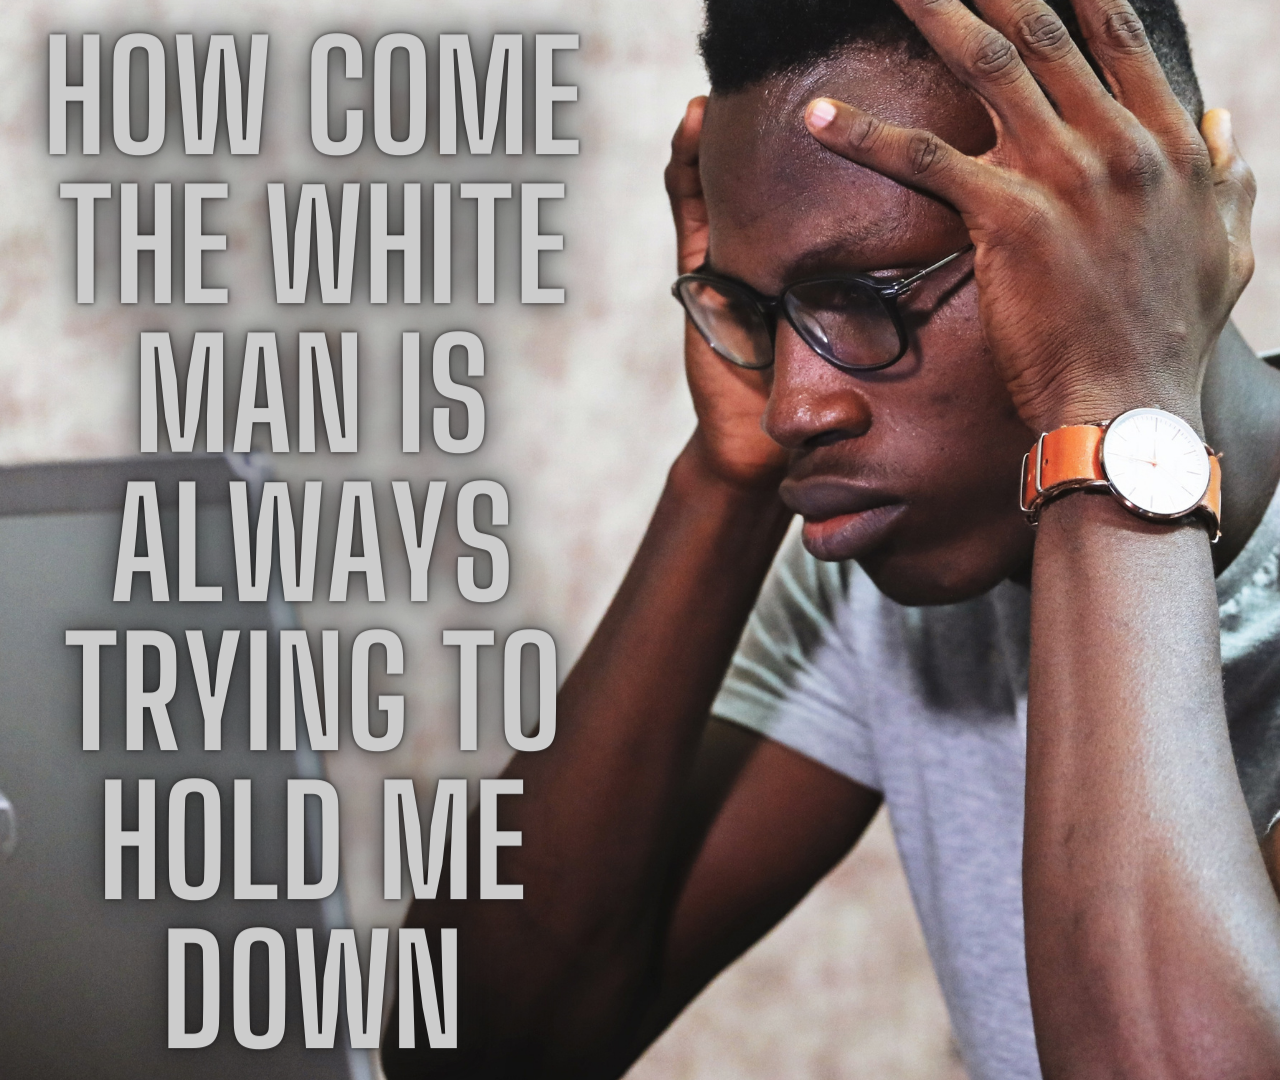 systemic racism, racism, white man holding me down, racist, white, black, black lives matter,